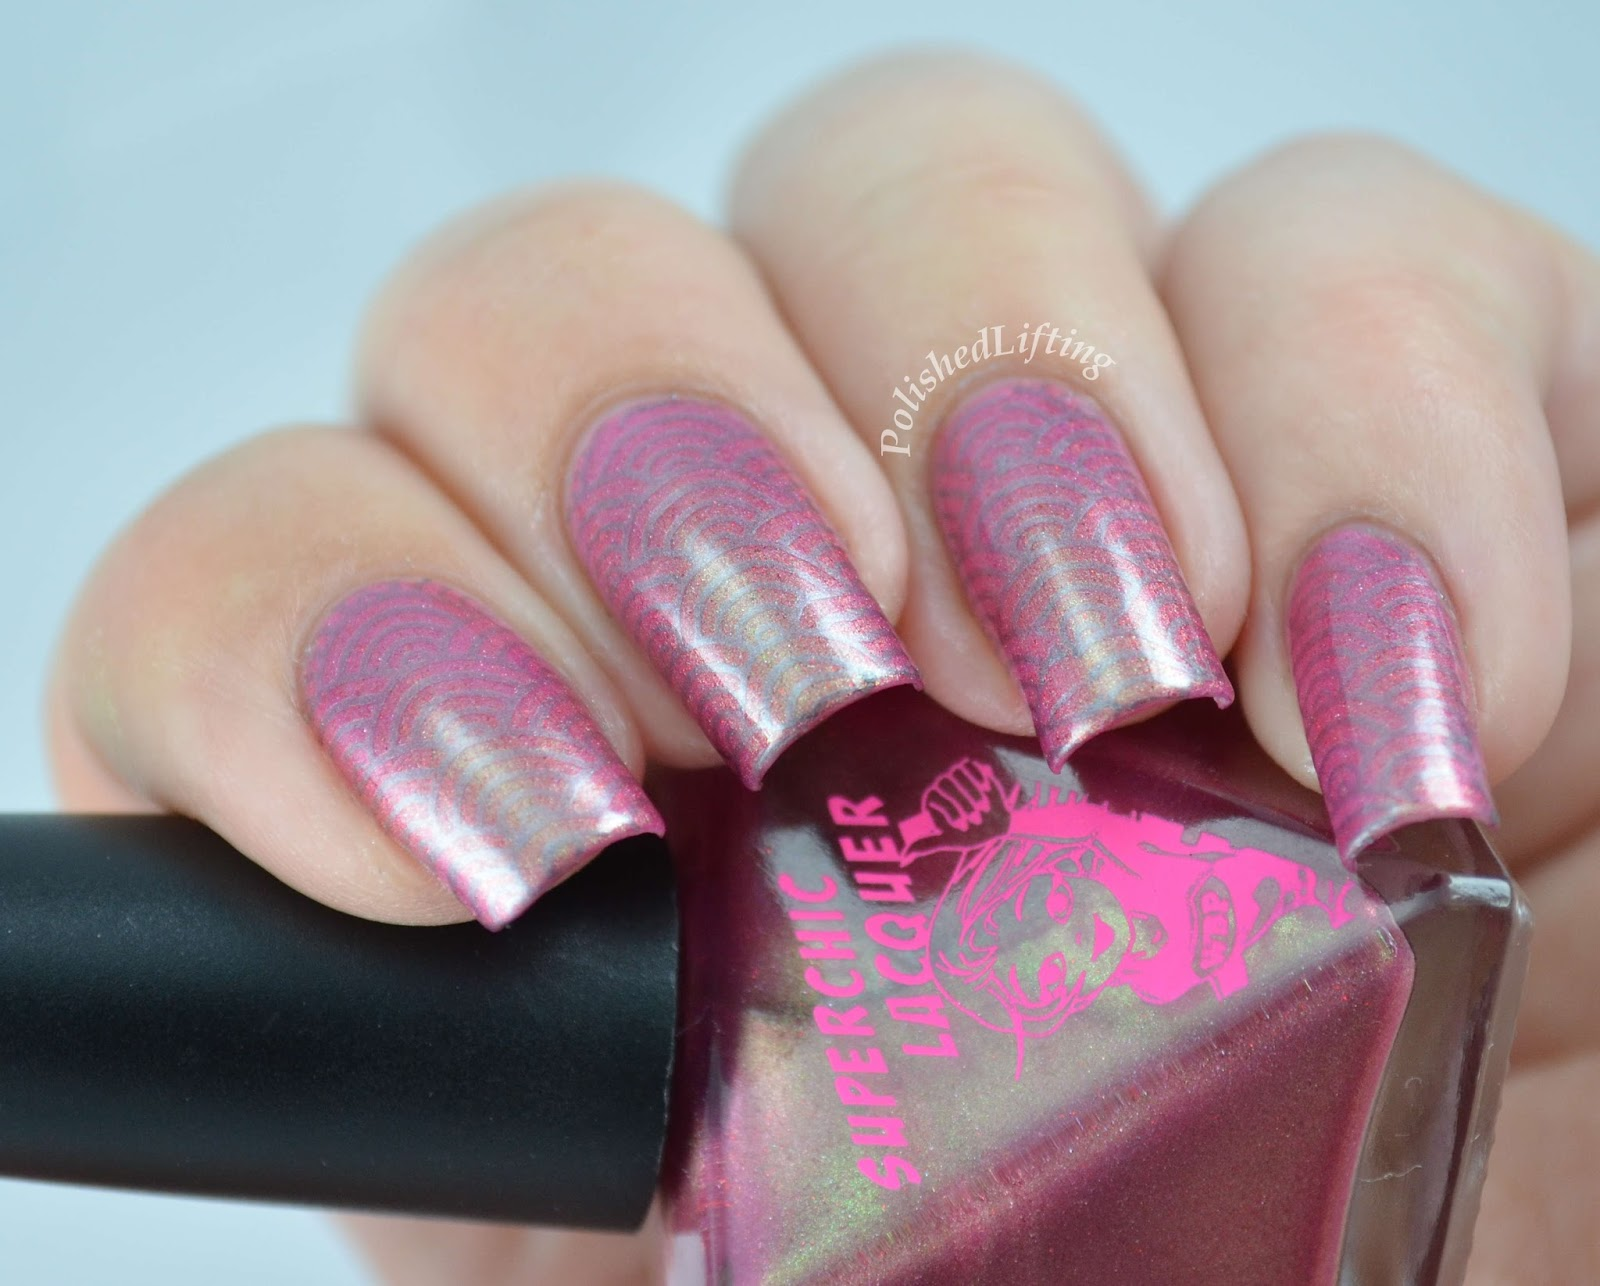 Superchic Lacquer Golden Delicious Curse Vivid Lacquer stamping vl 031 sally hansen insta dri gone grey